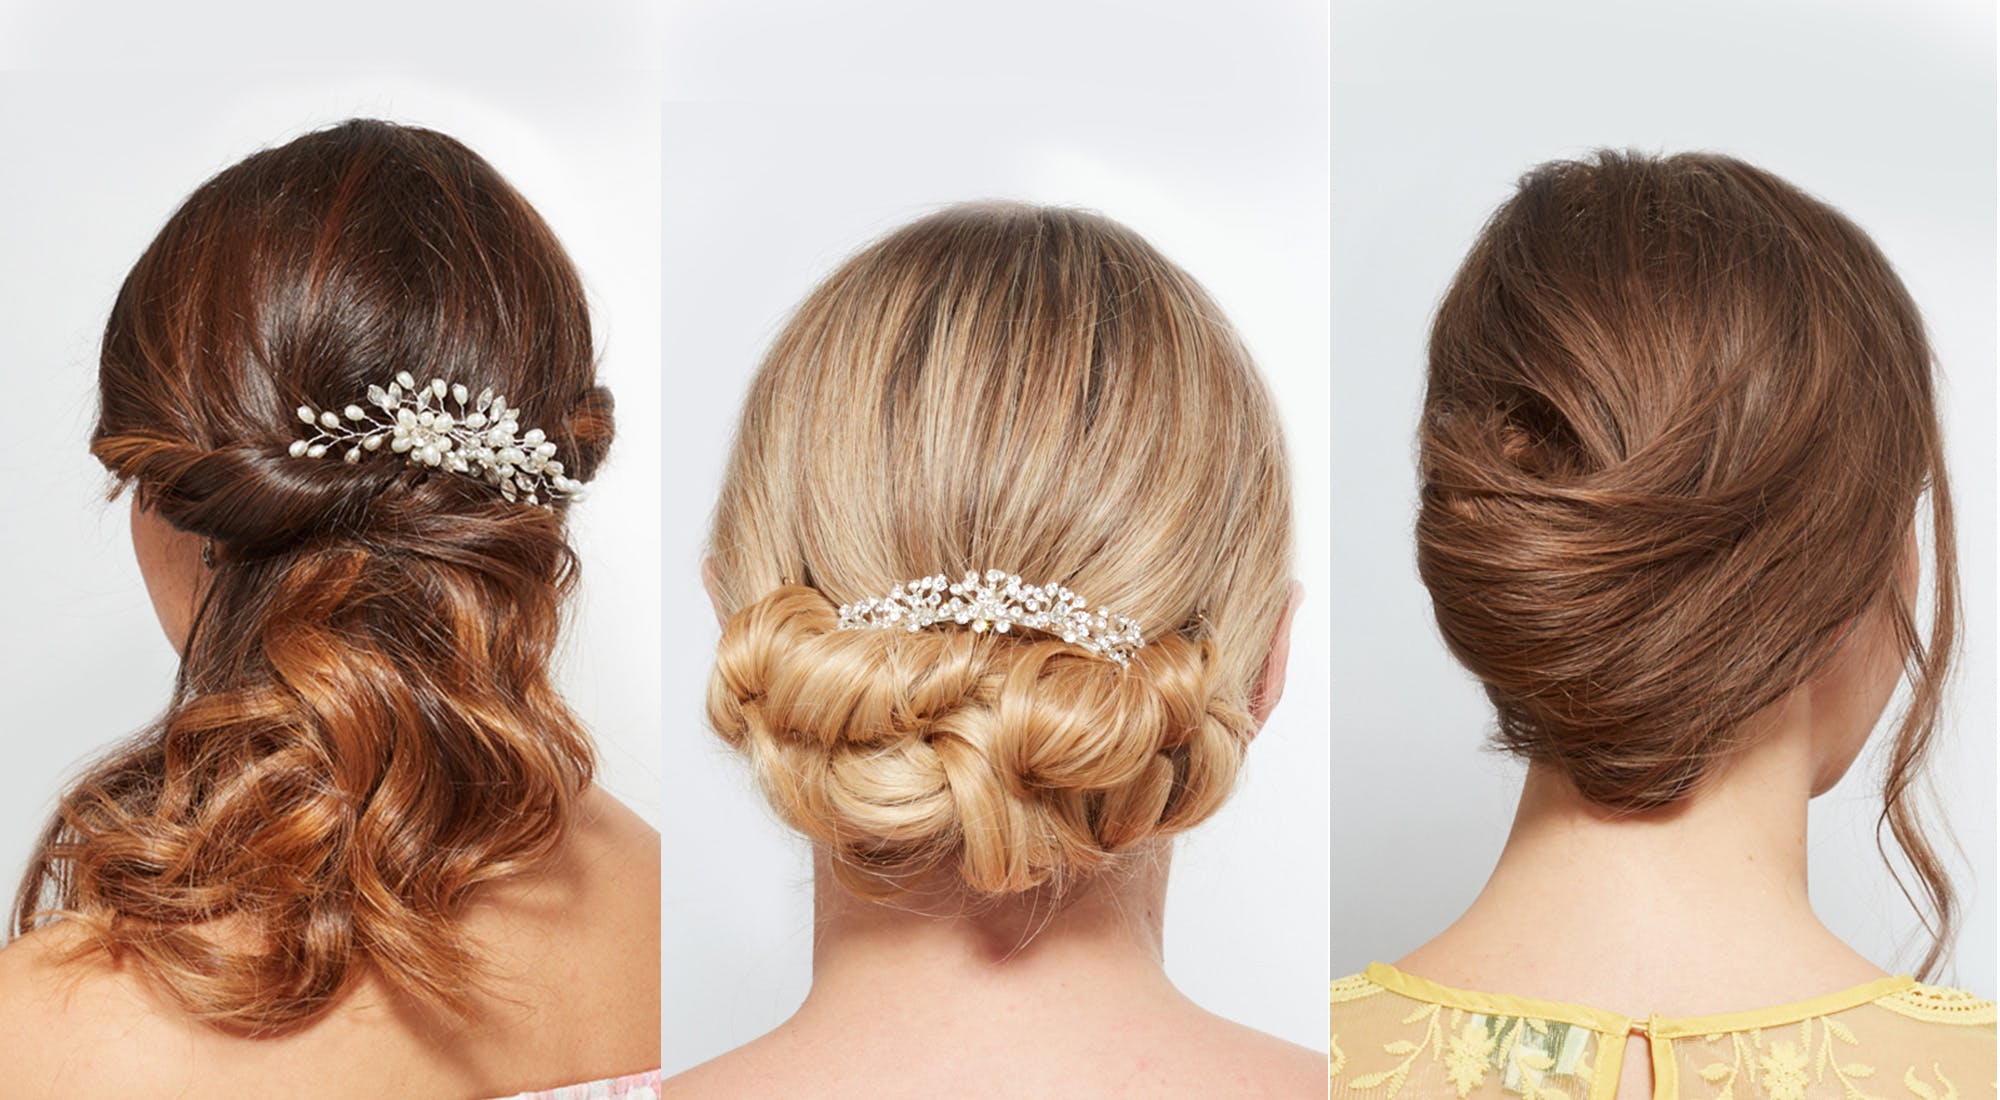 5 Bridesmaid hairstyle ideas  blow LTD